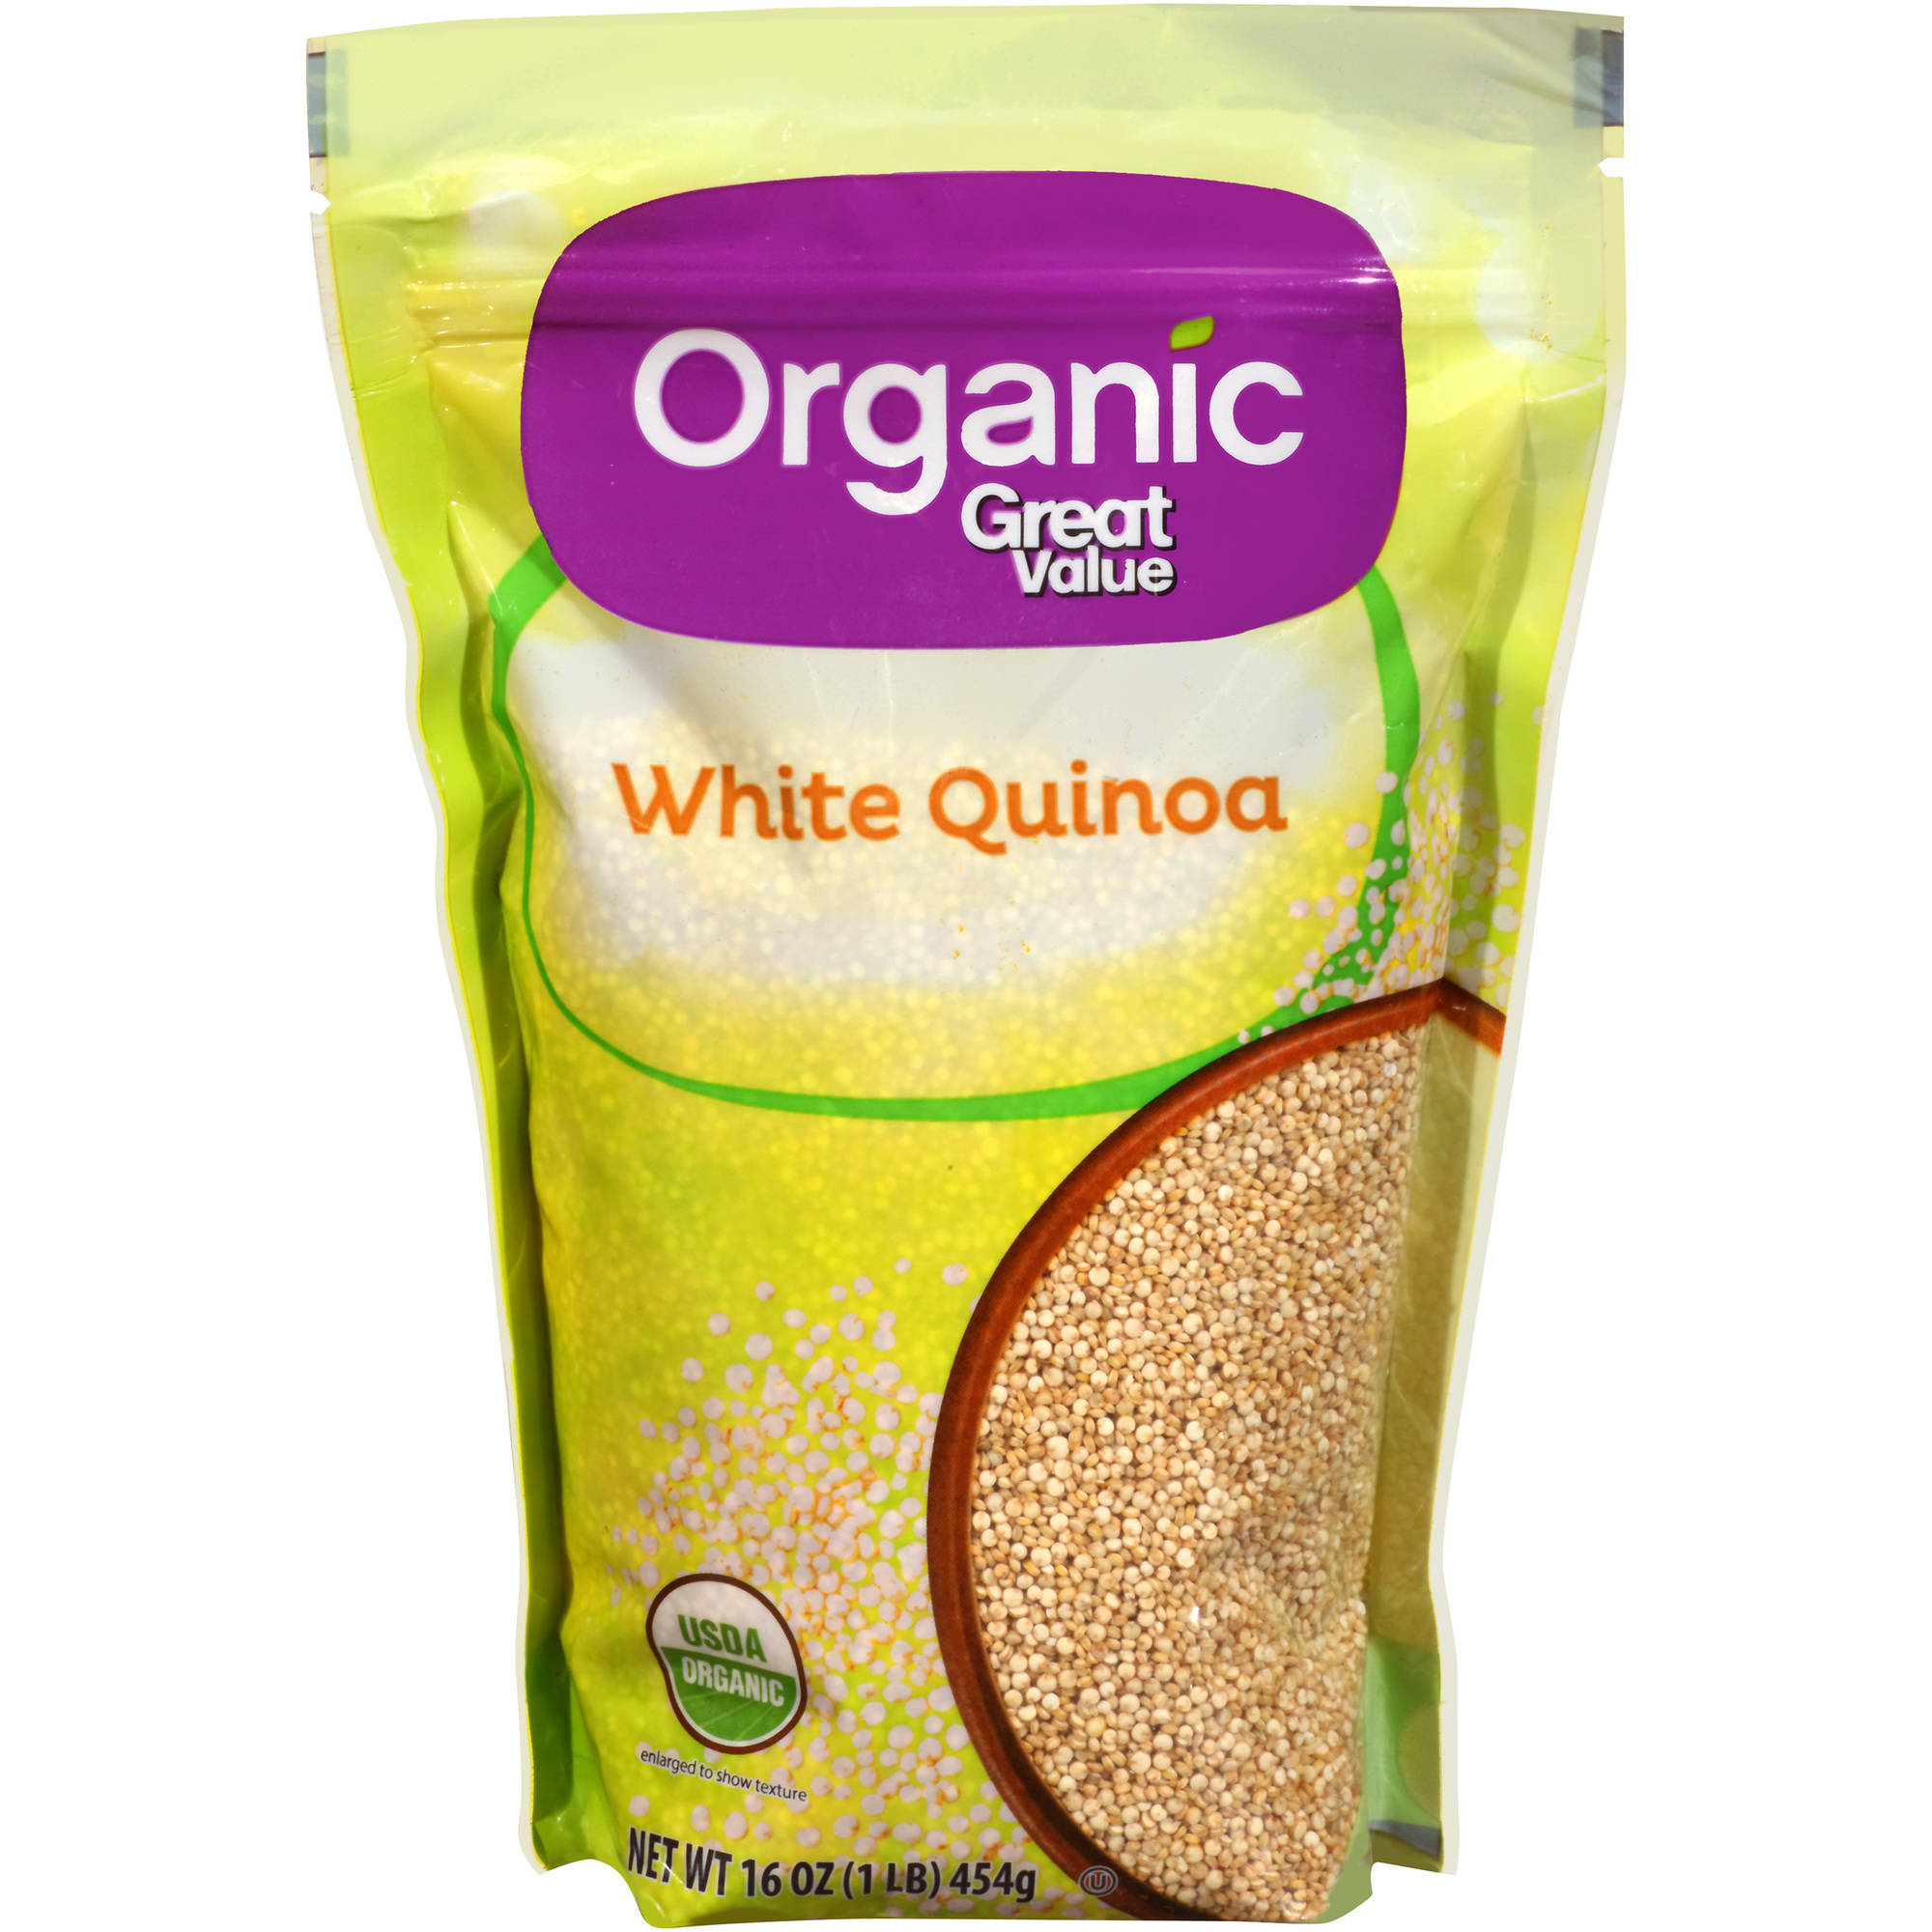 Organic Great Value White Quinoa, 16 oz